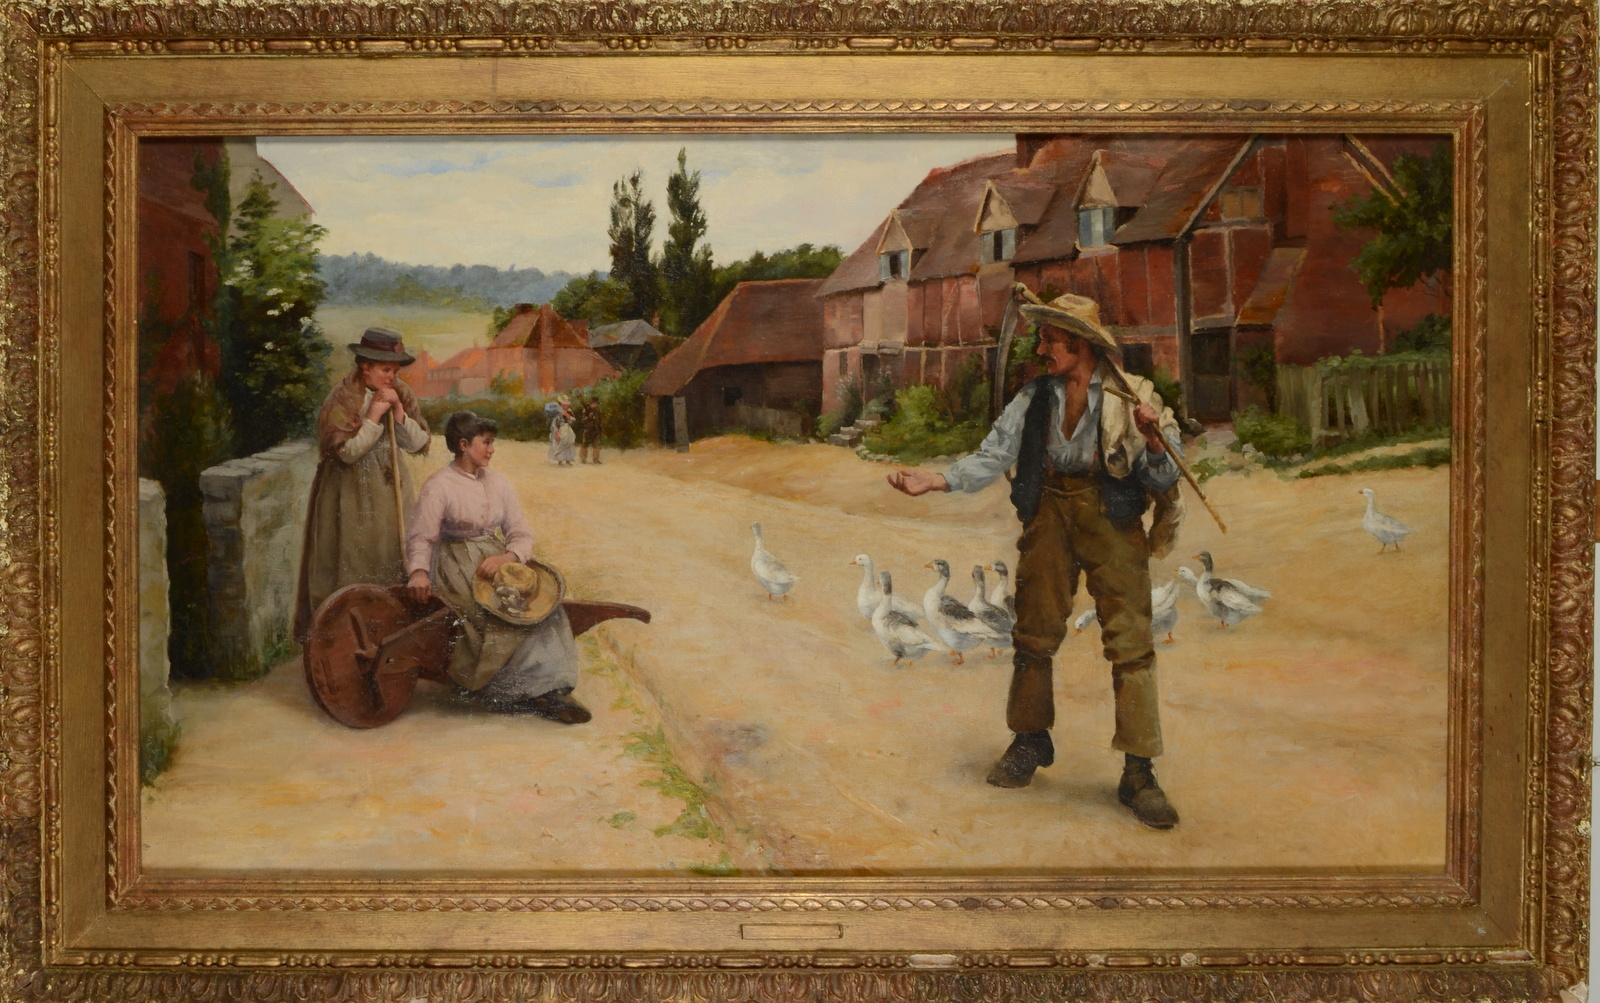 Lot 2 - PERCY ROBERT CRAFT Returning farm worker Oil on canvas Remnants of a label on the back with the